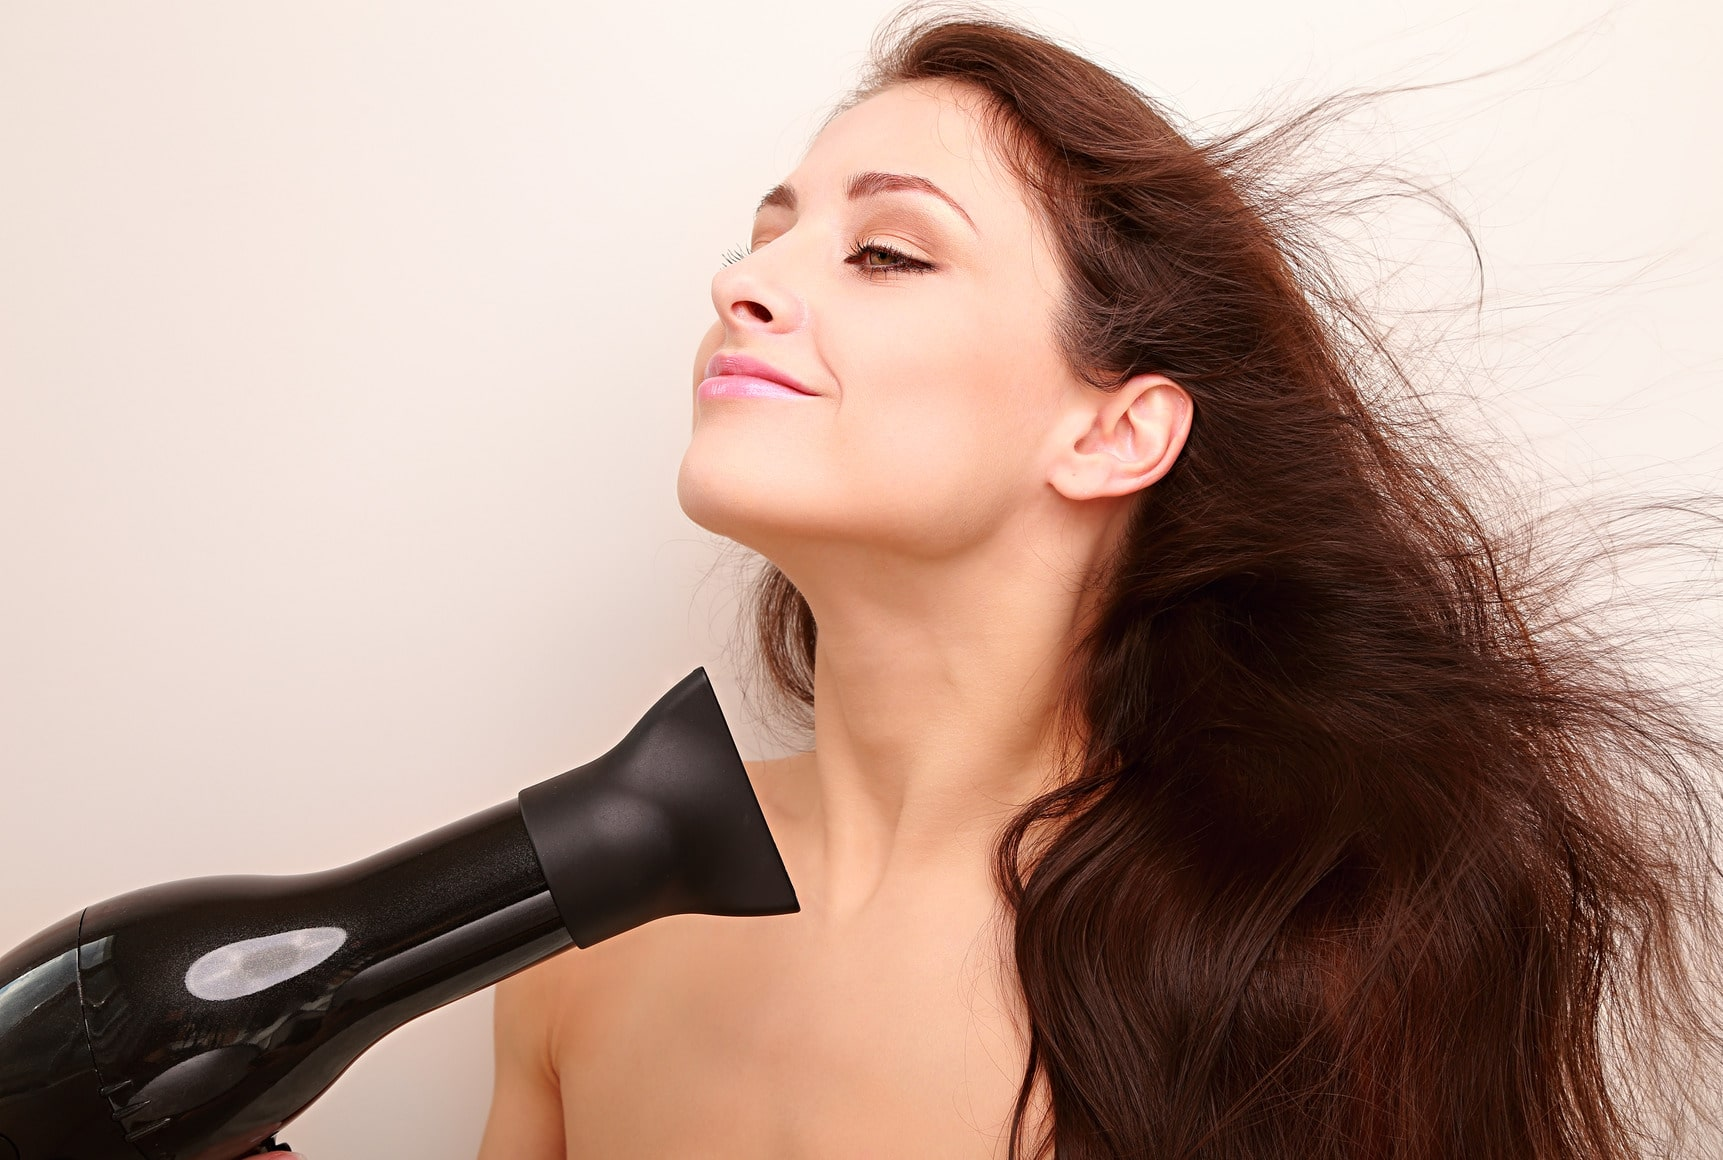 How to use hair styling tools?